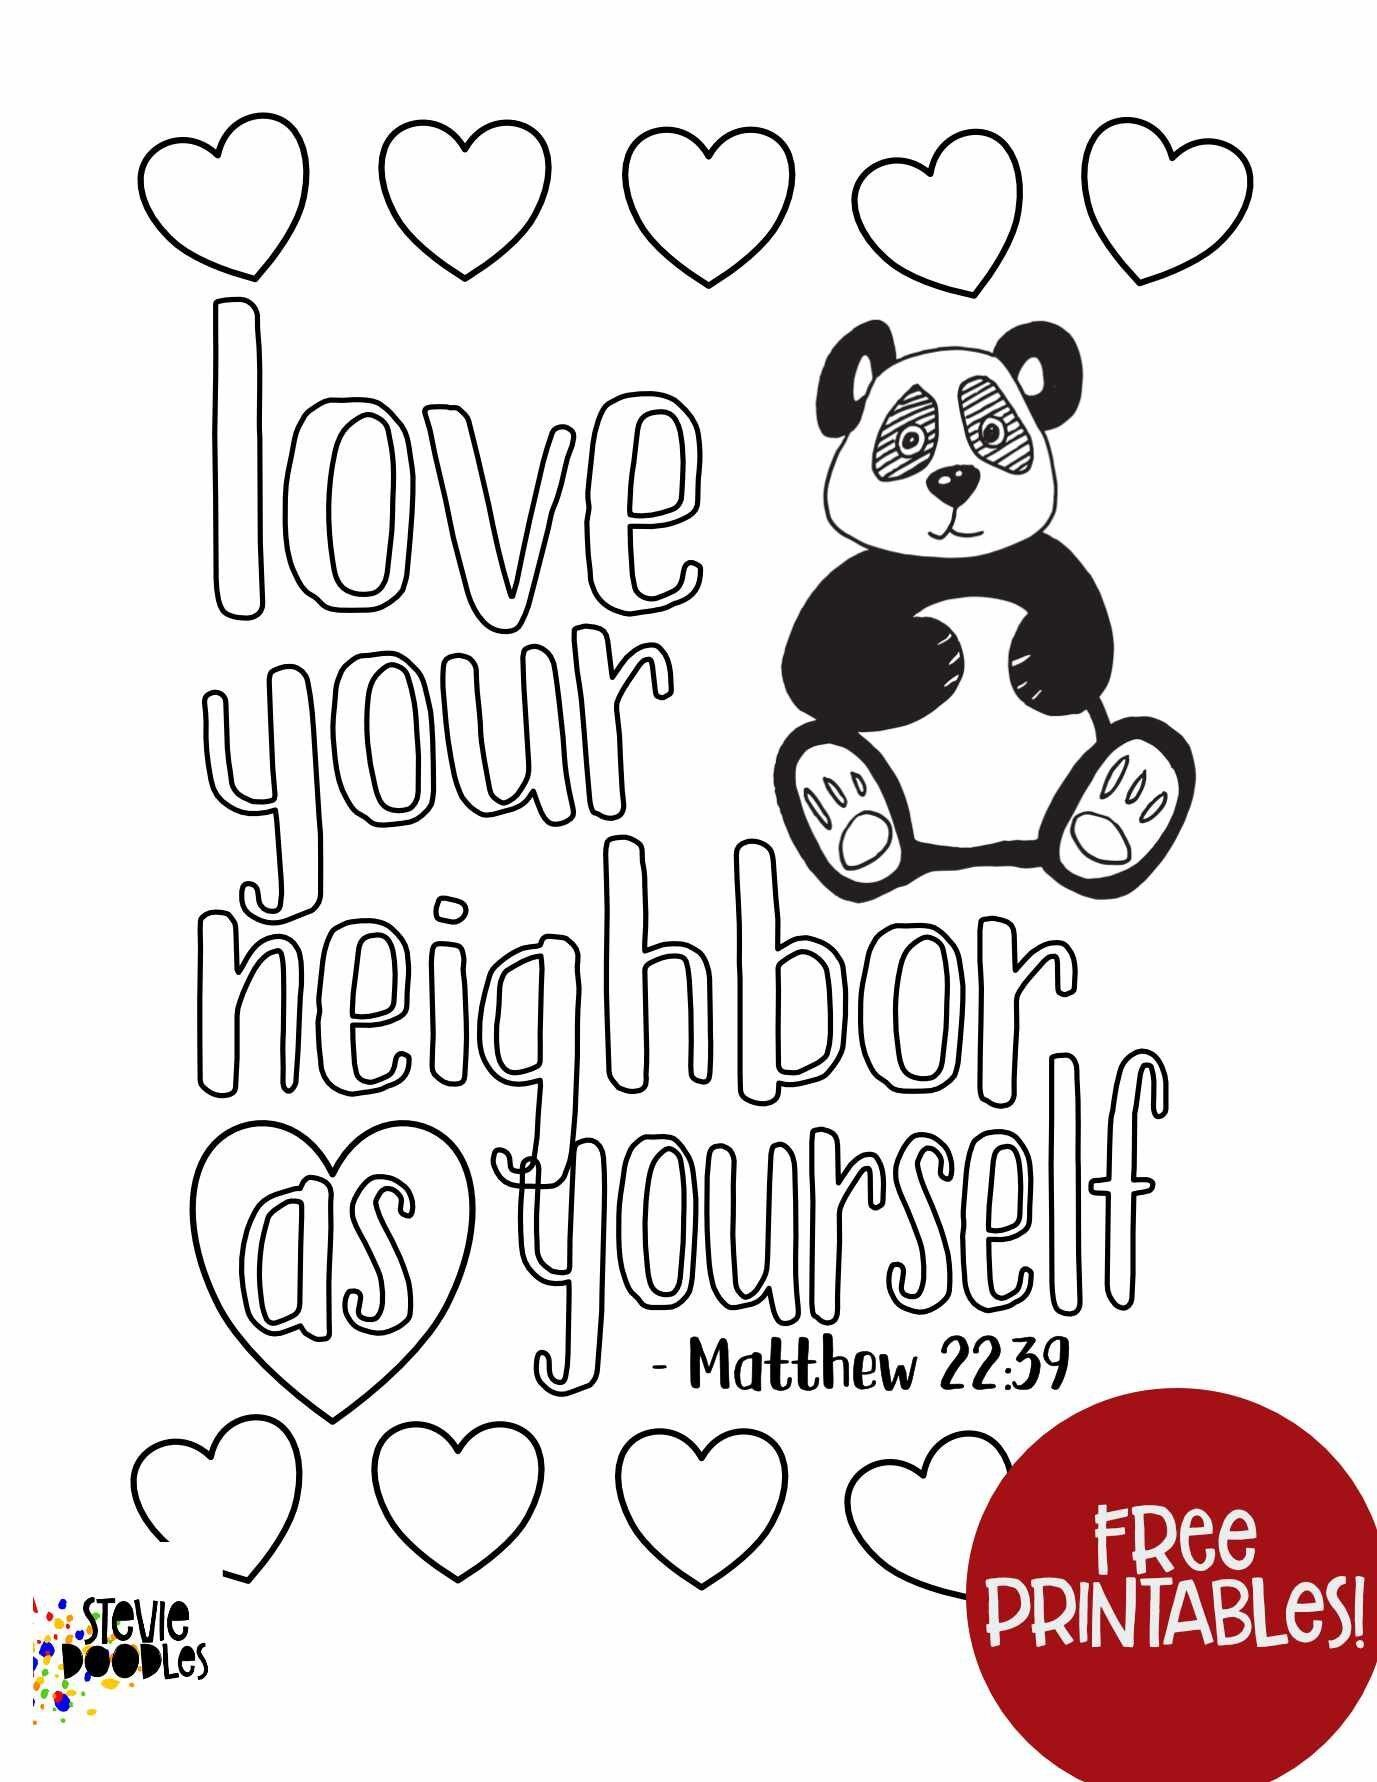 Free Kids Coloring Page - Matthew 22:39 - Love Your Neighbor As Yourself over 1000 free coloring pages at Stevie Doodles  #freecoloringpage #scripturecoloring #scriptureprintable #biblecoloring #bibleprintable #kidsmemoryverse #kidsscriptureprintable #kidsbiblestudy #loveyourneighbor